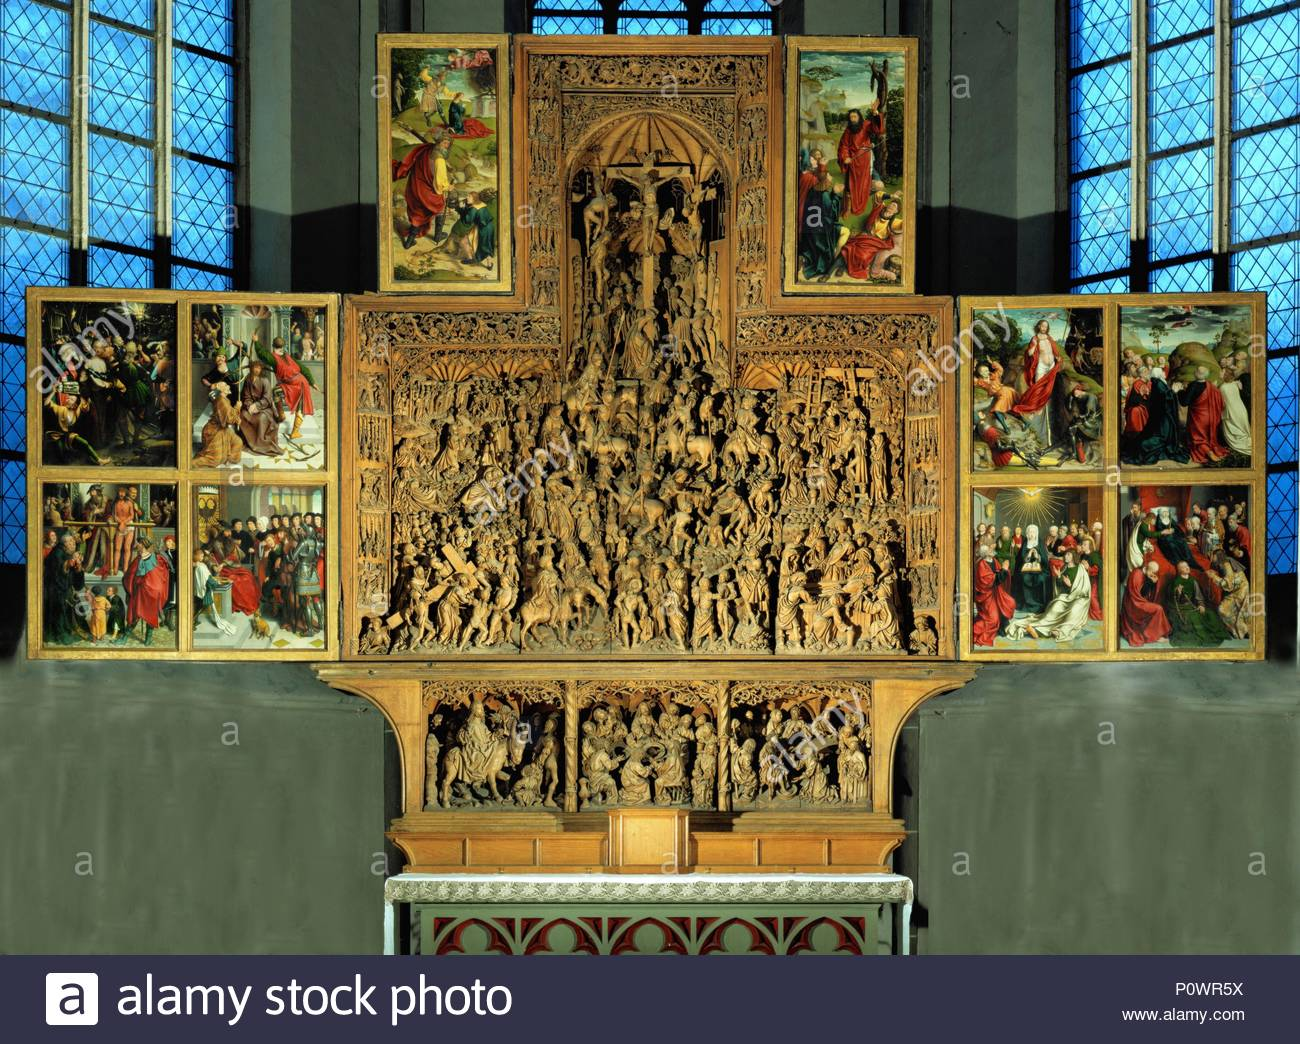 Main altar, woodcarving by Arndt van Zwolle and Ludwig Juppe, 1492; paintings by Jan Joest. Center: Passion. Predella: entry into Jerusalem, Last Supper, carrying the cross. Wings: passion, Pilate hand-washing; Resurrection, Ascension, Whitsun, St. Mary's death. Author: ZWOLLE, ARNDT VAN. Location: Saint Nicolai Church, Kalkar, Germany. - Stock Image